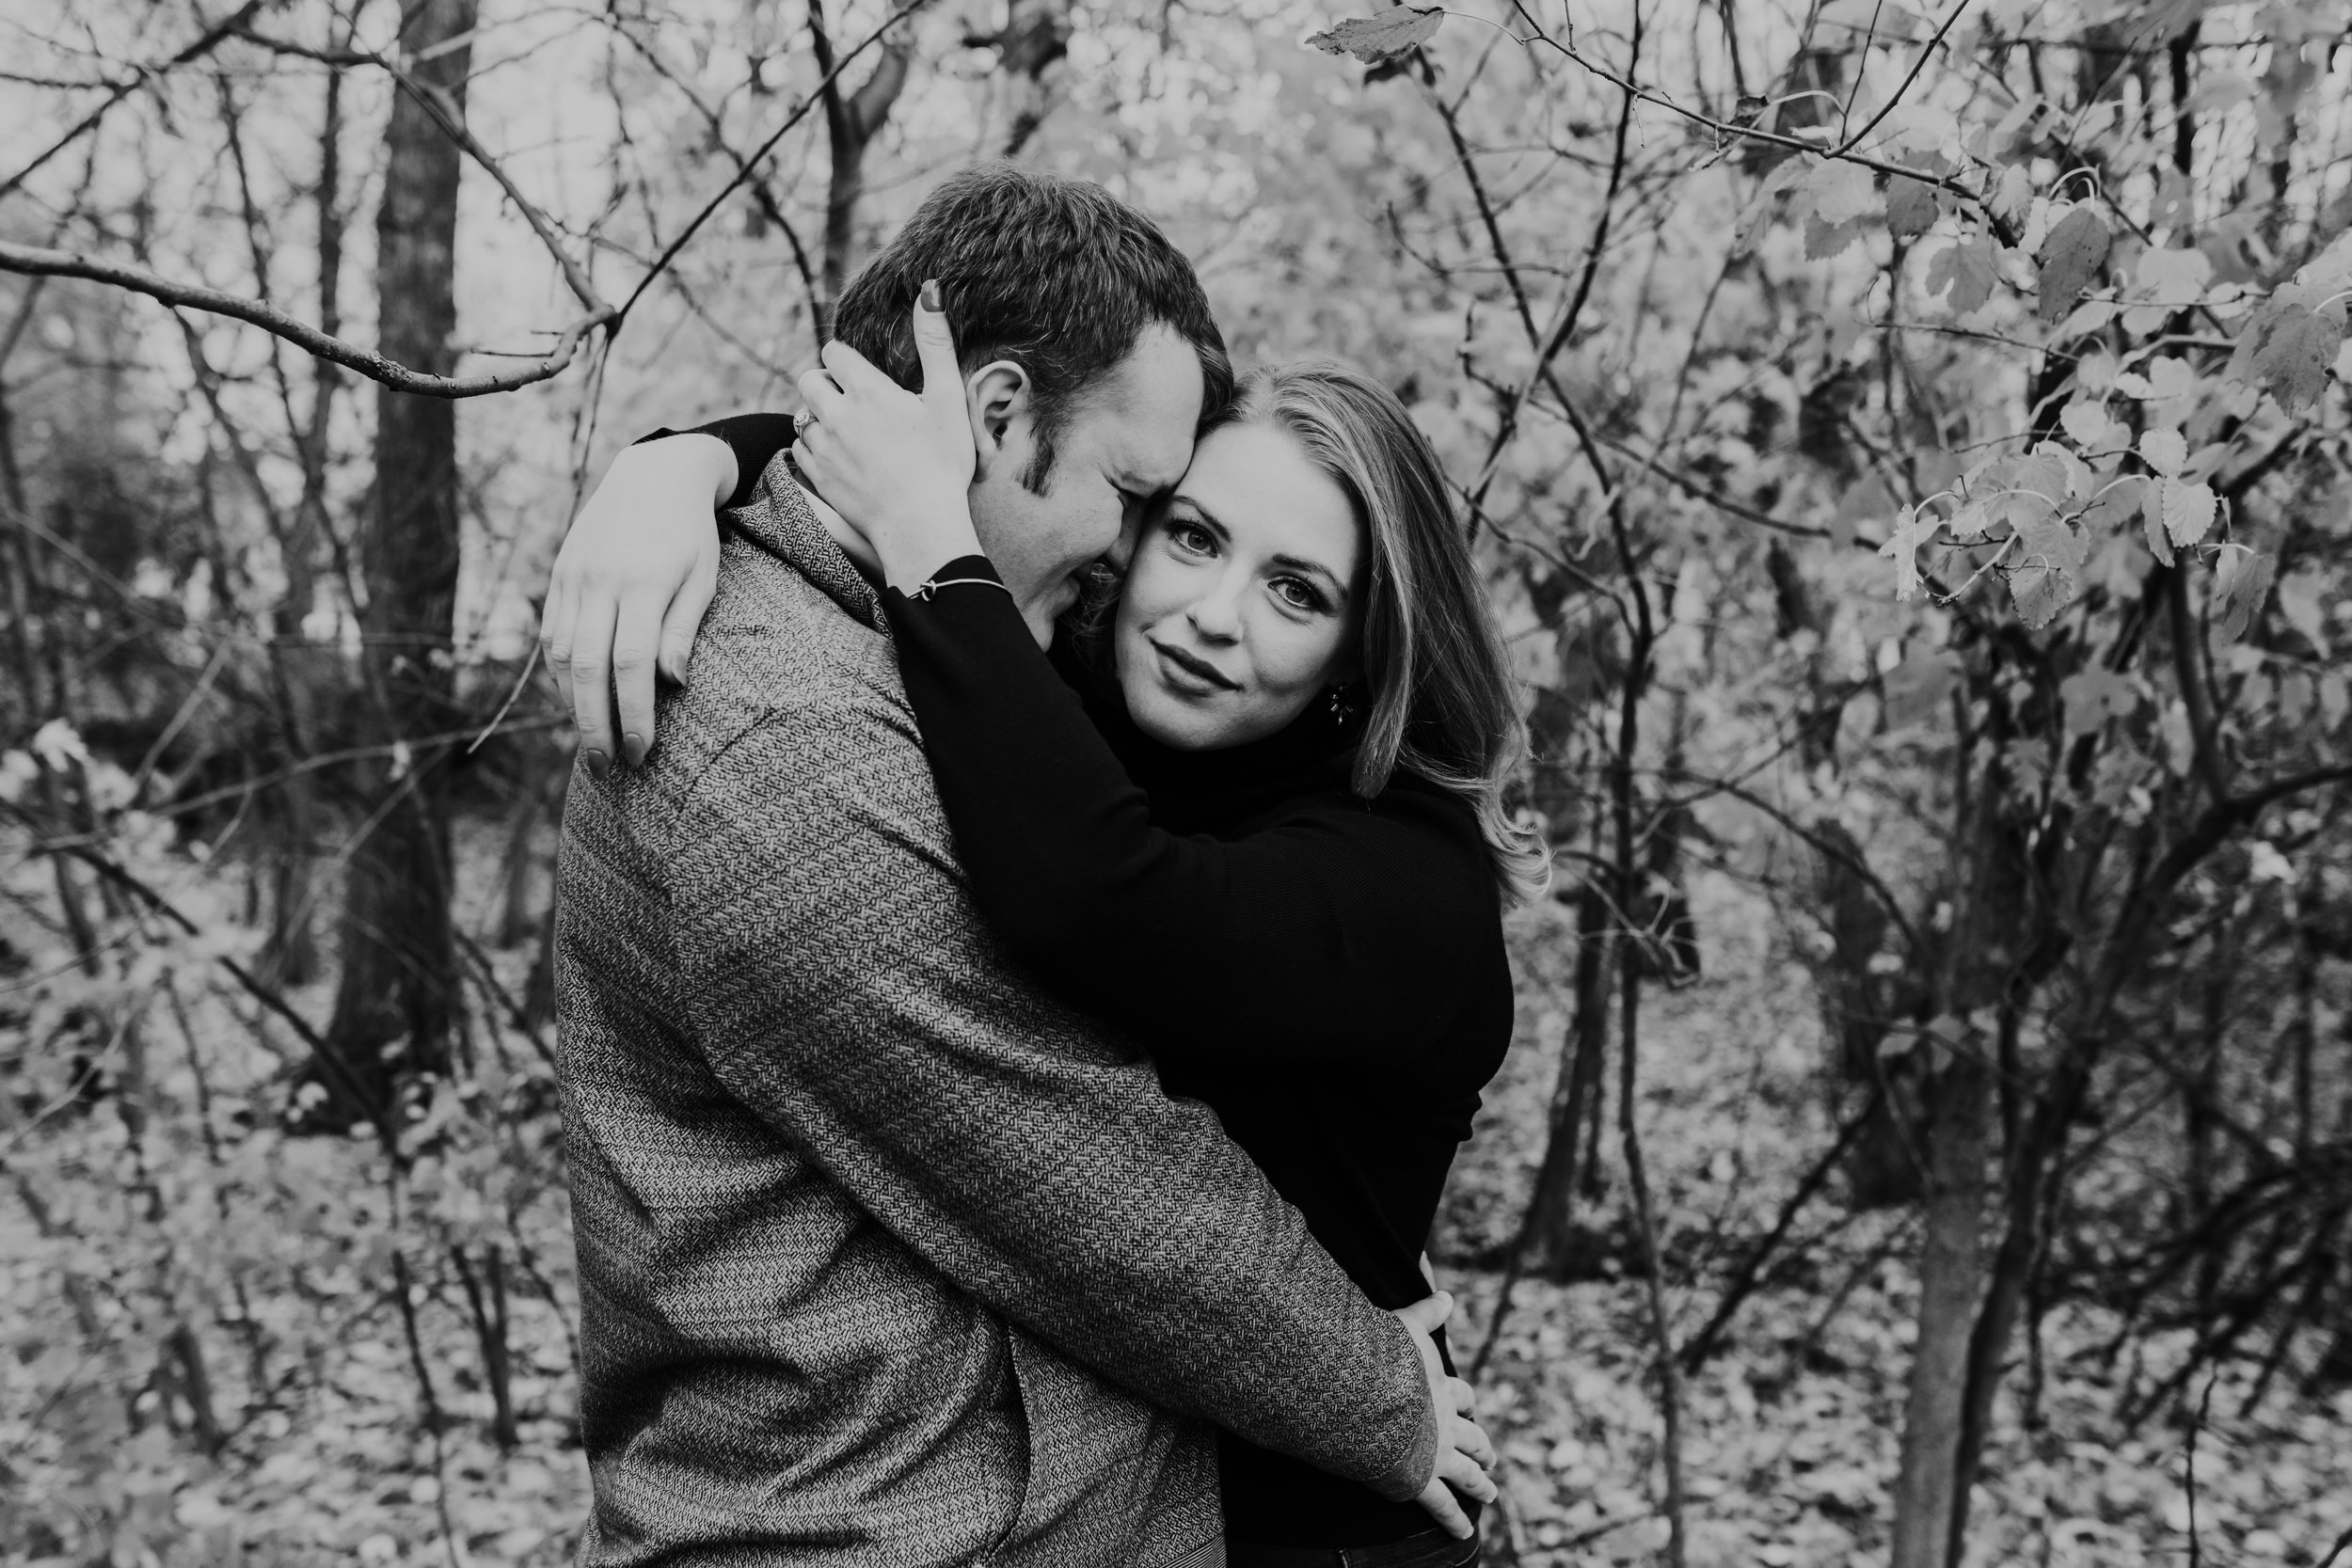 Meghan & Igor - Engaged - Nathaniel Jensen Photography - Omaha Nebraska Wedding Photograper-66.jpg